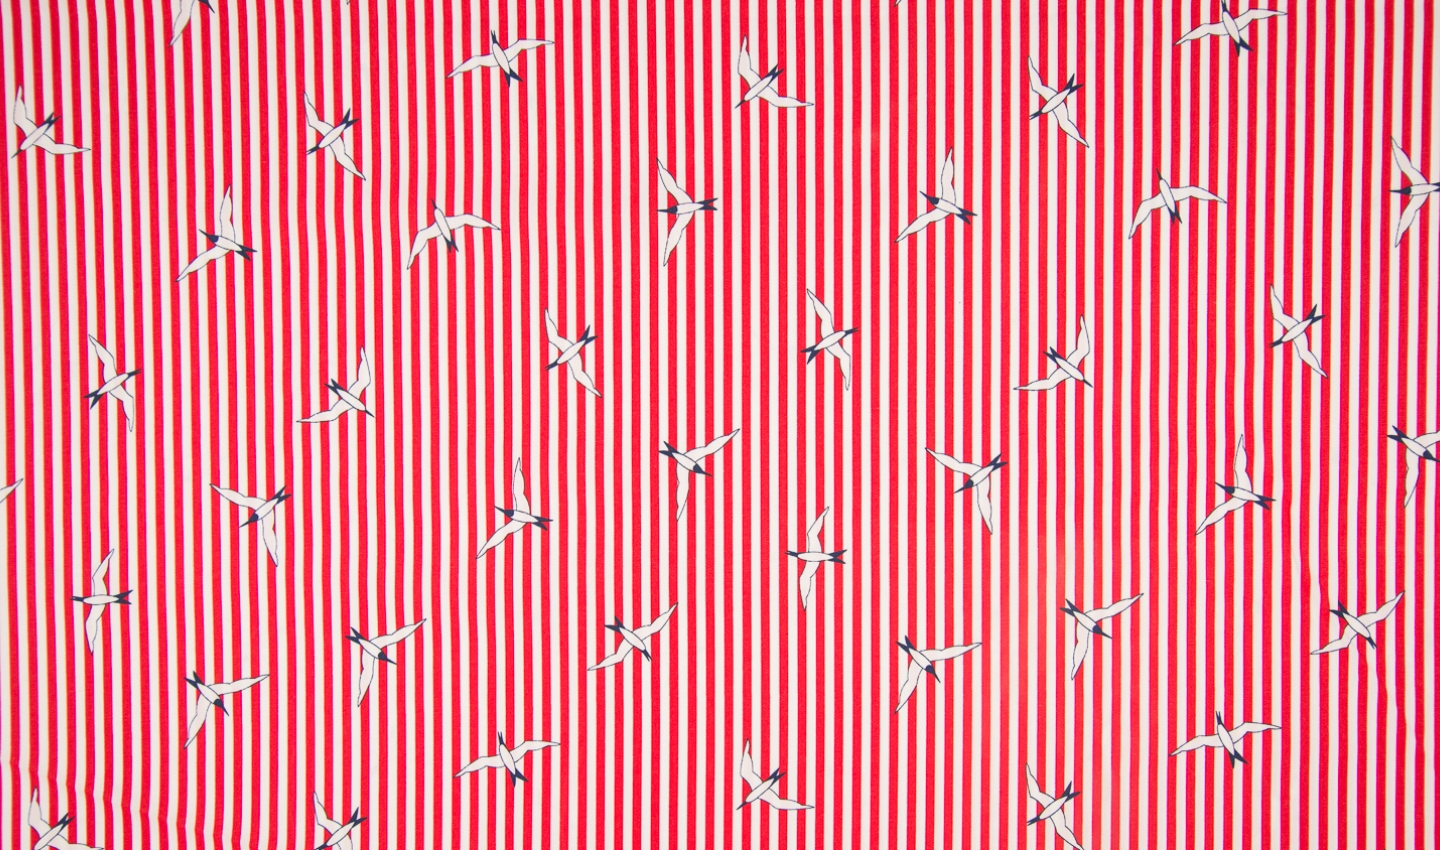 Seagull - Stripes - red-white